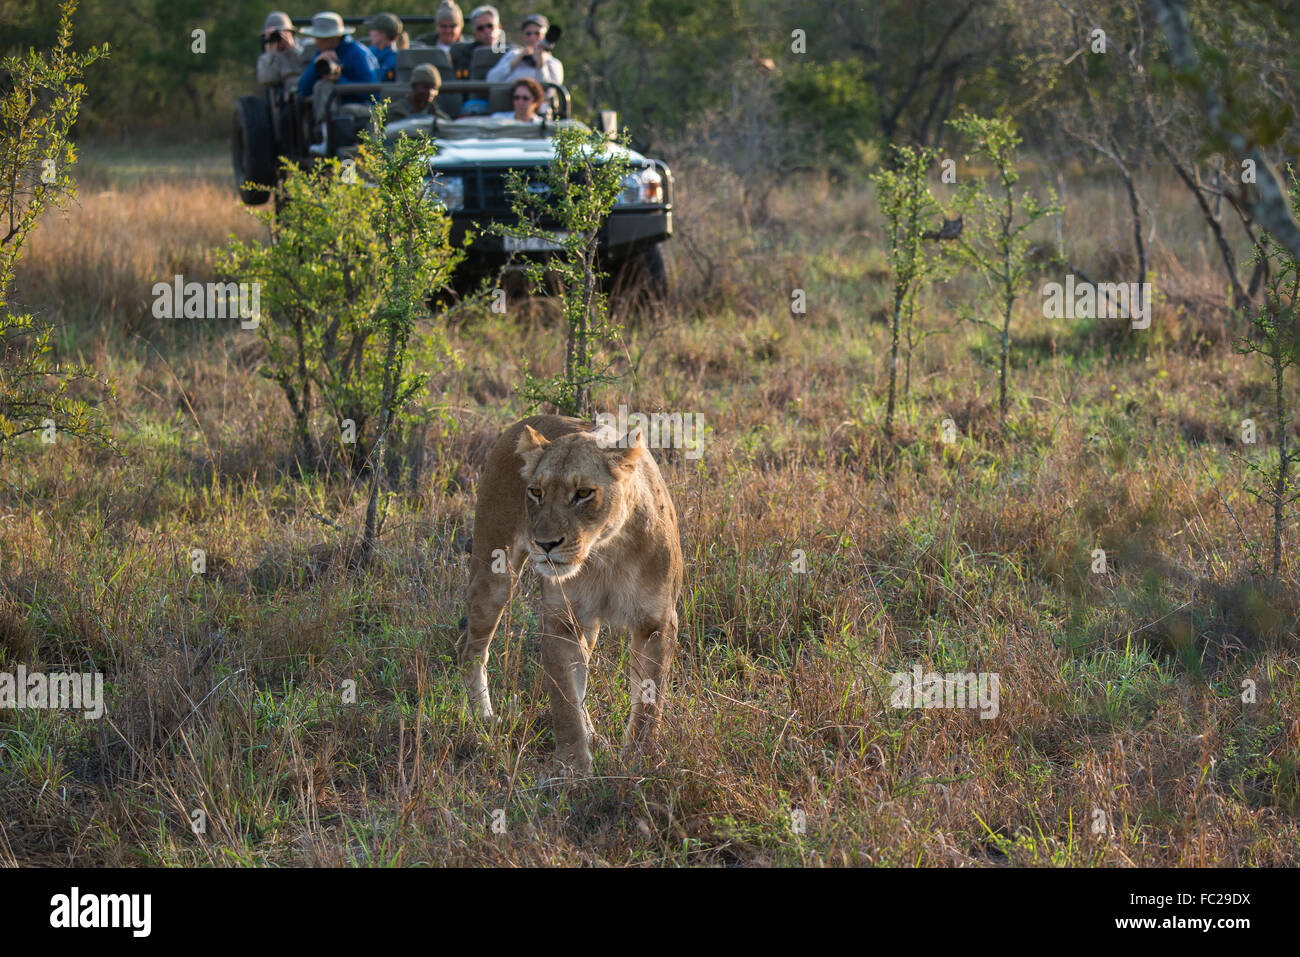 Lioness (Panthera leo) and safari jeep, Sabi Sands Game Reserve, South Africa - Stock Image